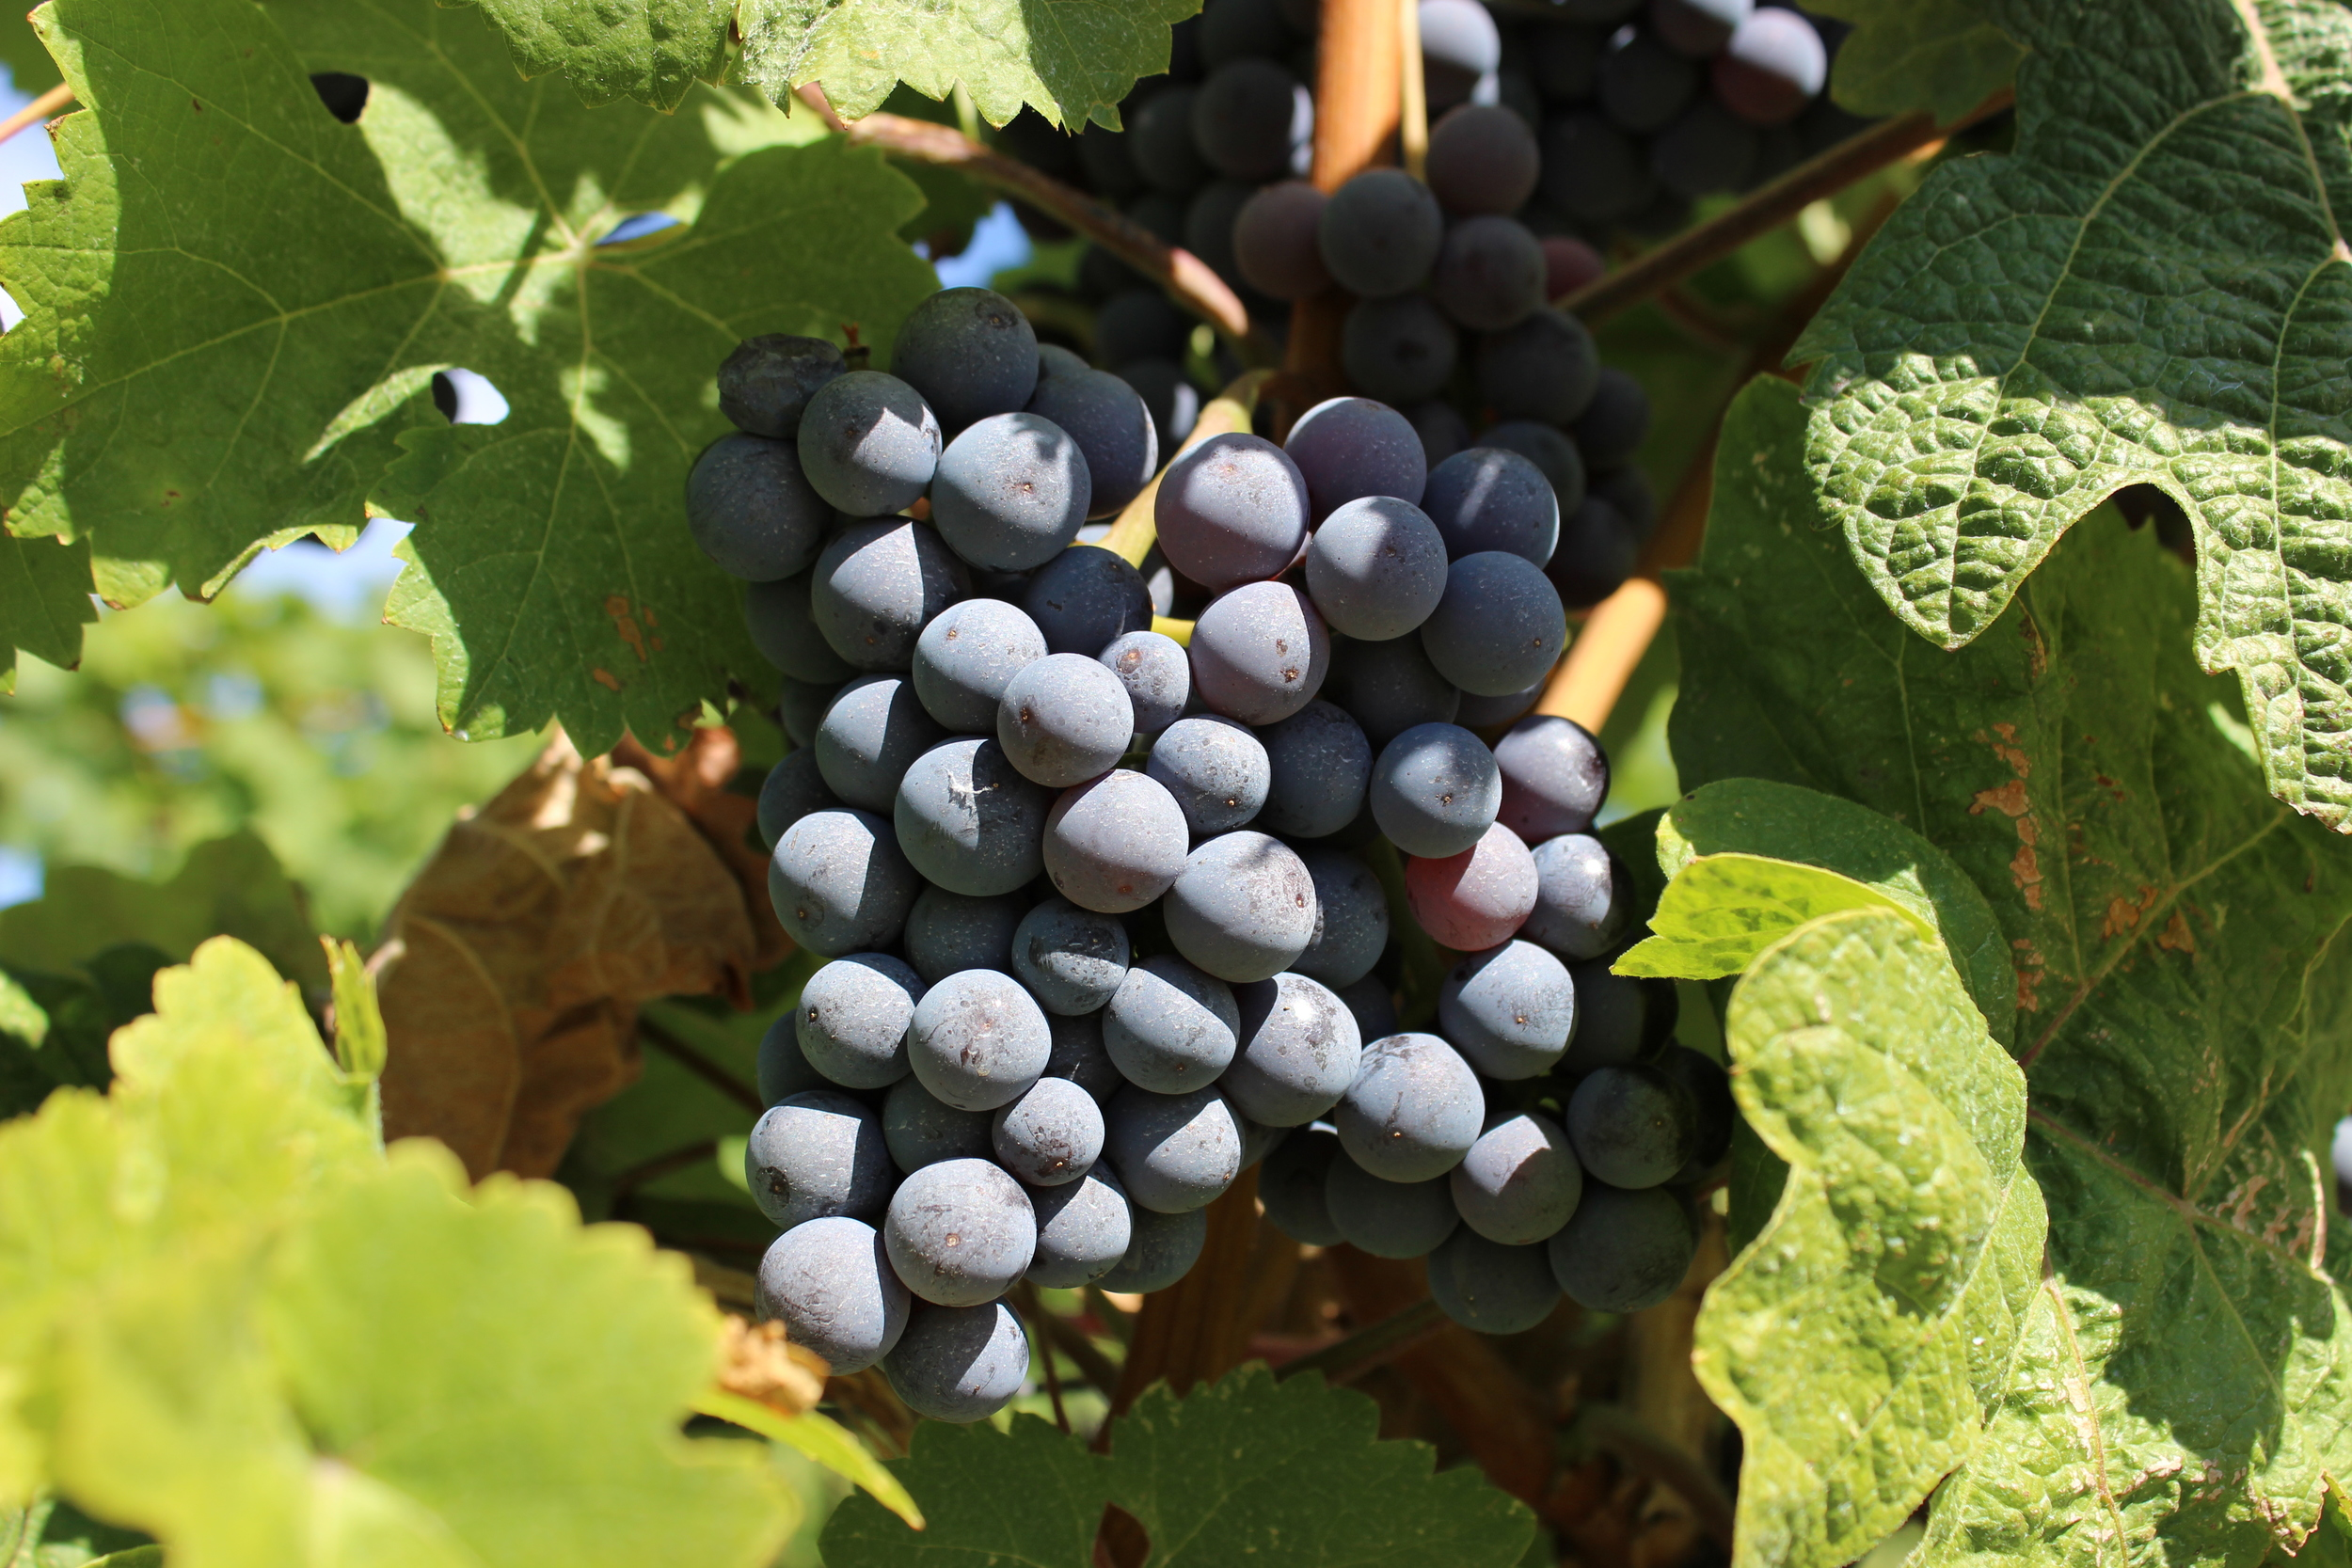 Just one more awesome shot that Dave took.  These grapes were at Gray Monk Winery.